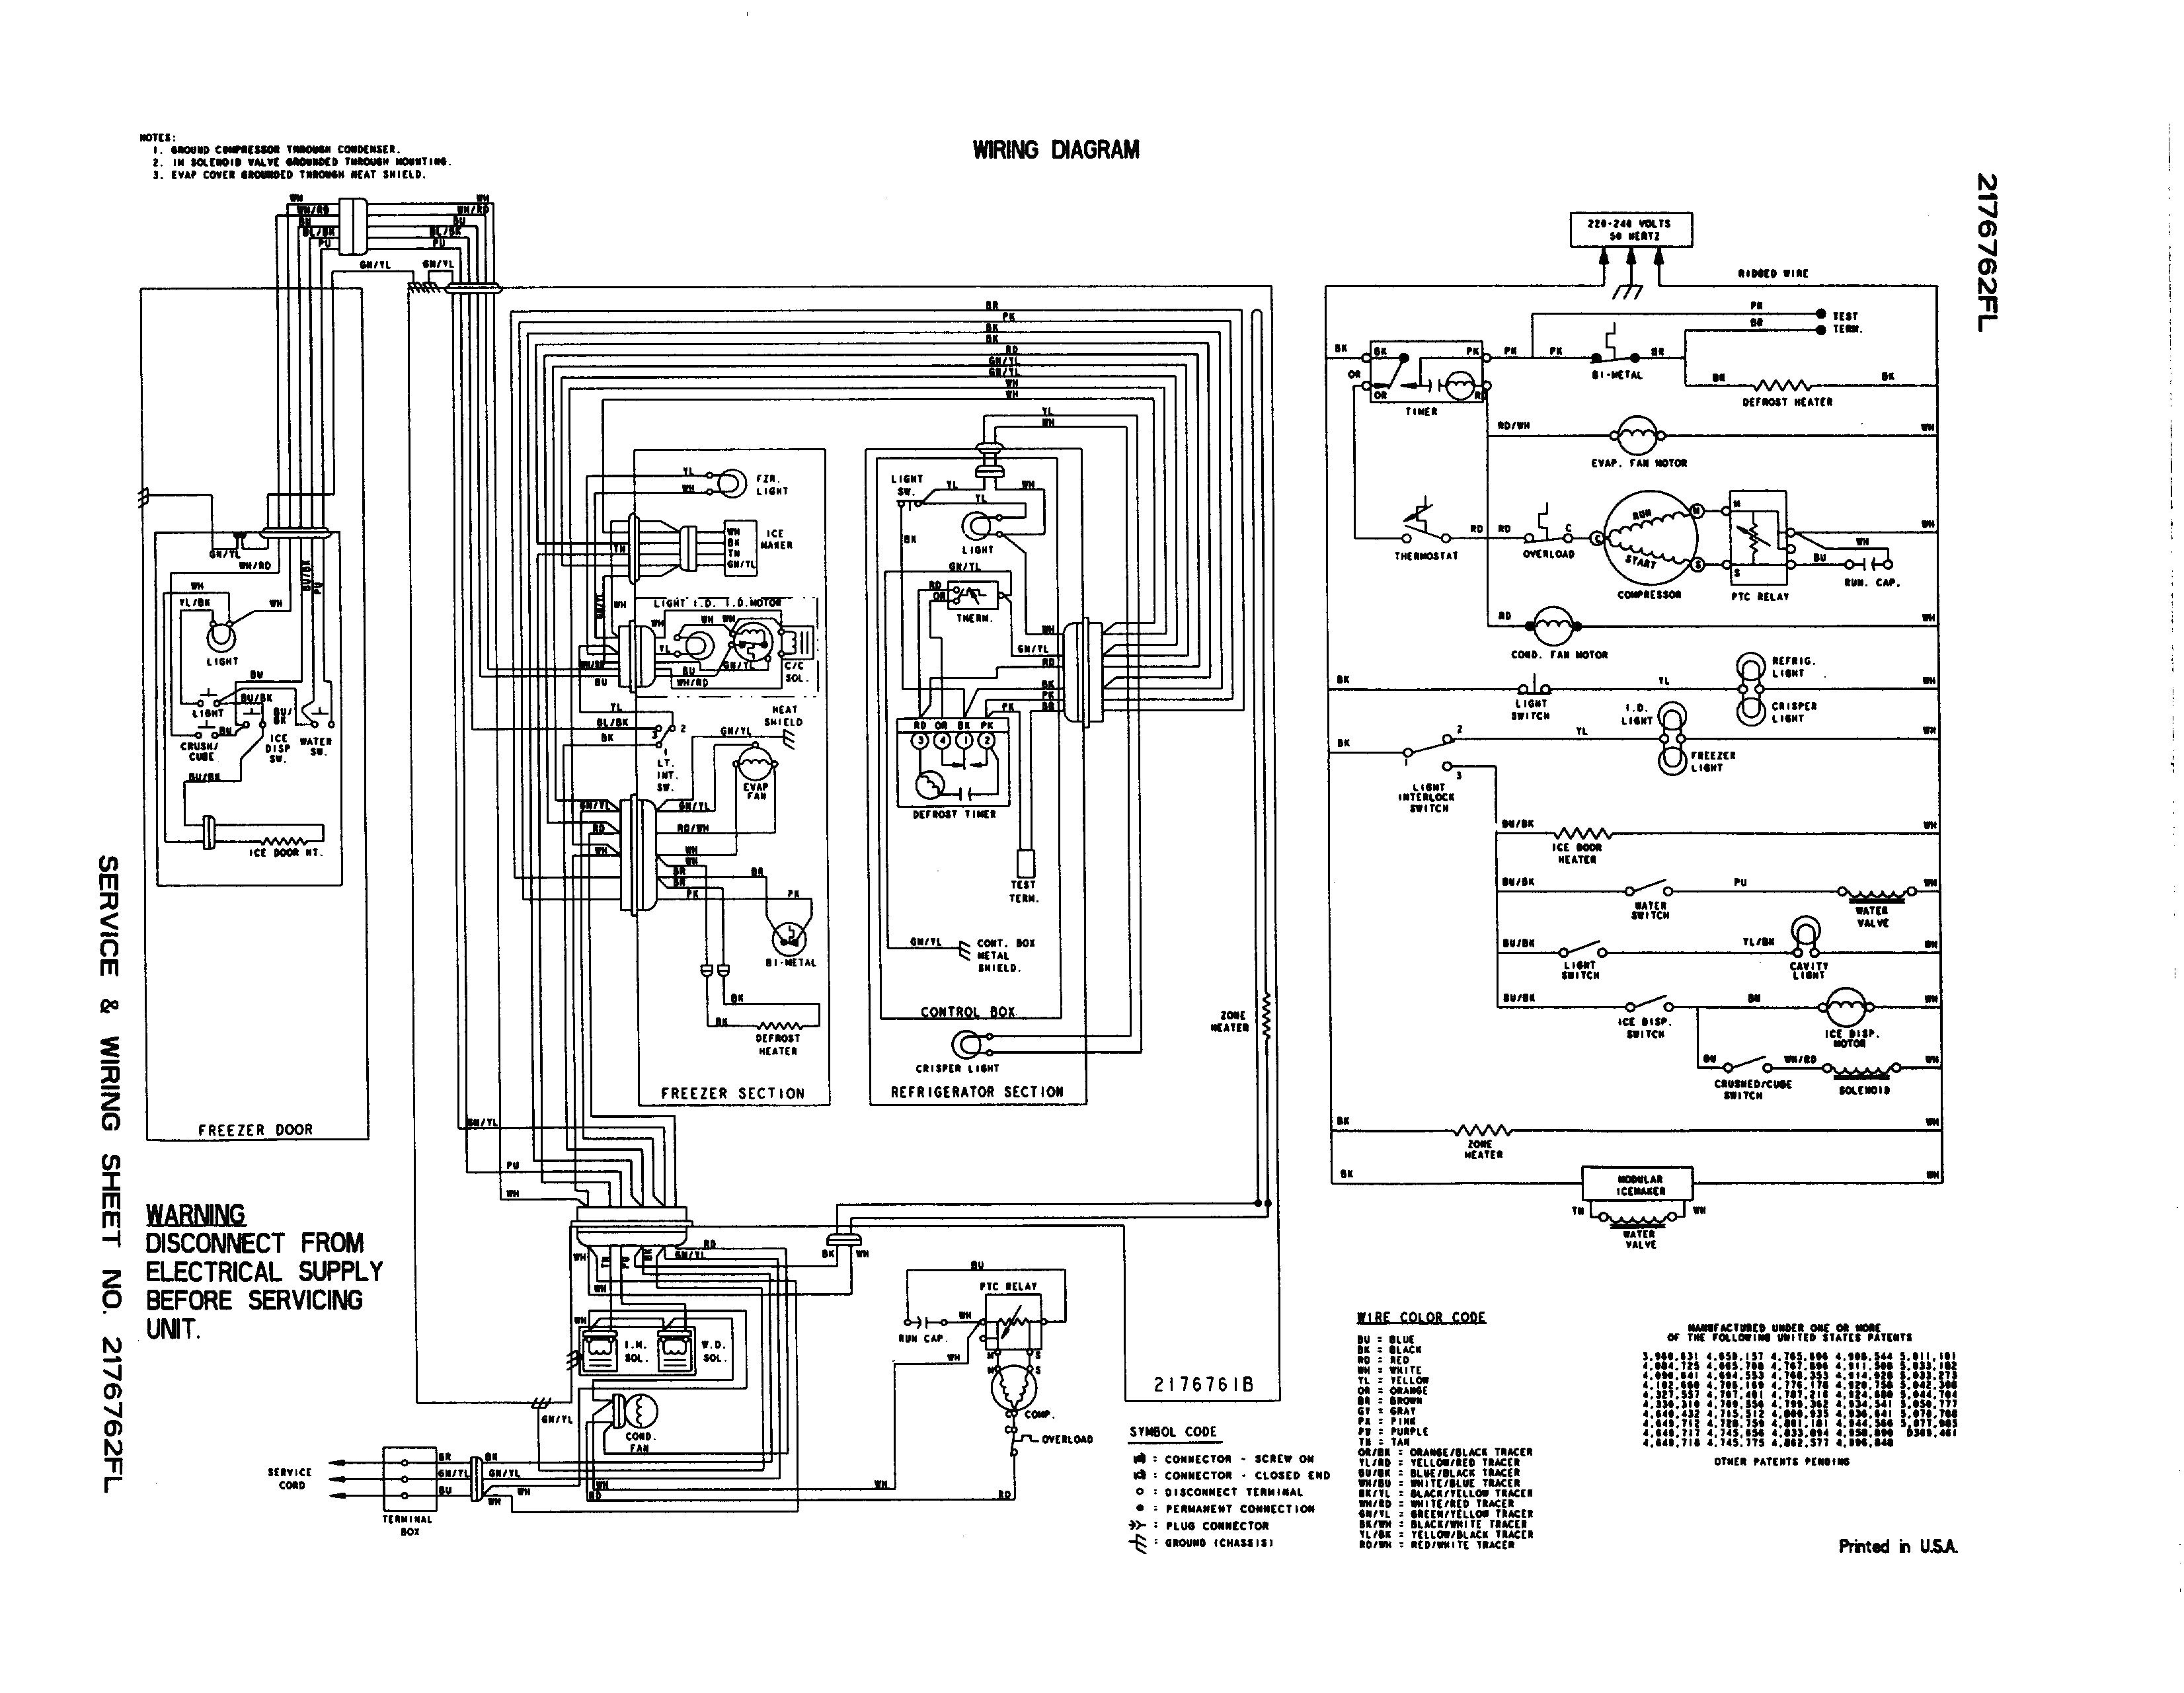 Wiring Diagram John Deere L130 Mower Solved For F910 Elegant Image Rh Mainetreasurechest Com